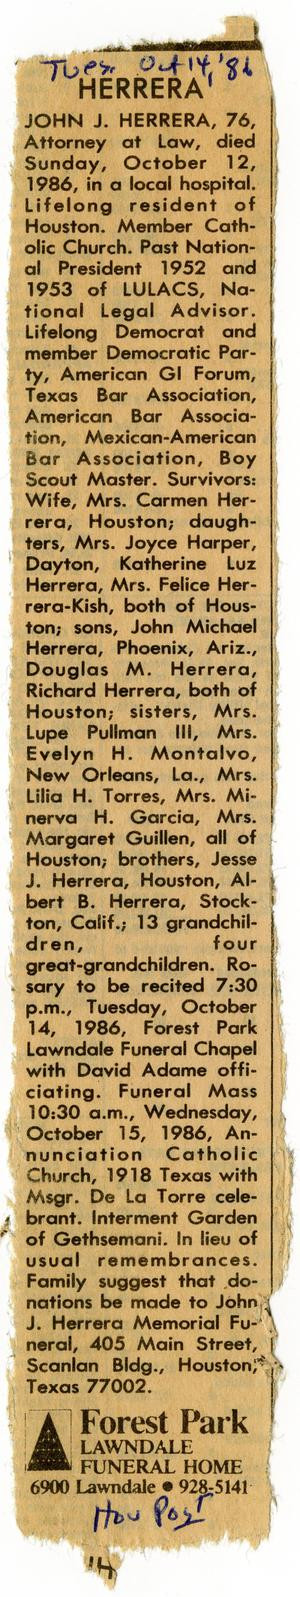 Primary view of object titled '[Obituary for John J. Herrera, Houston Post - 1986-10-14]'.